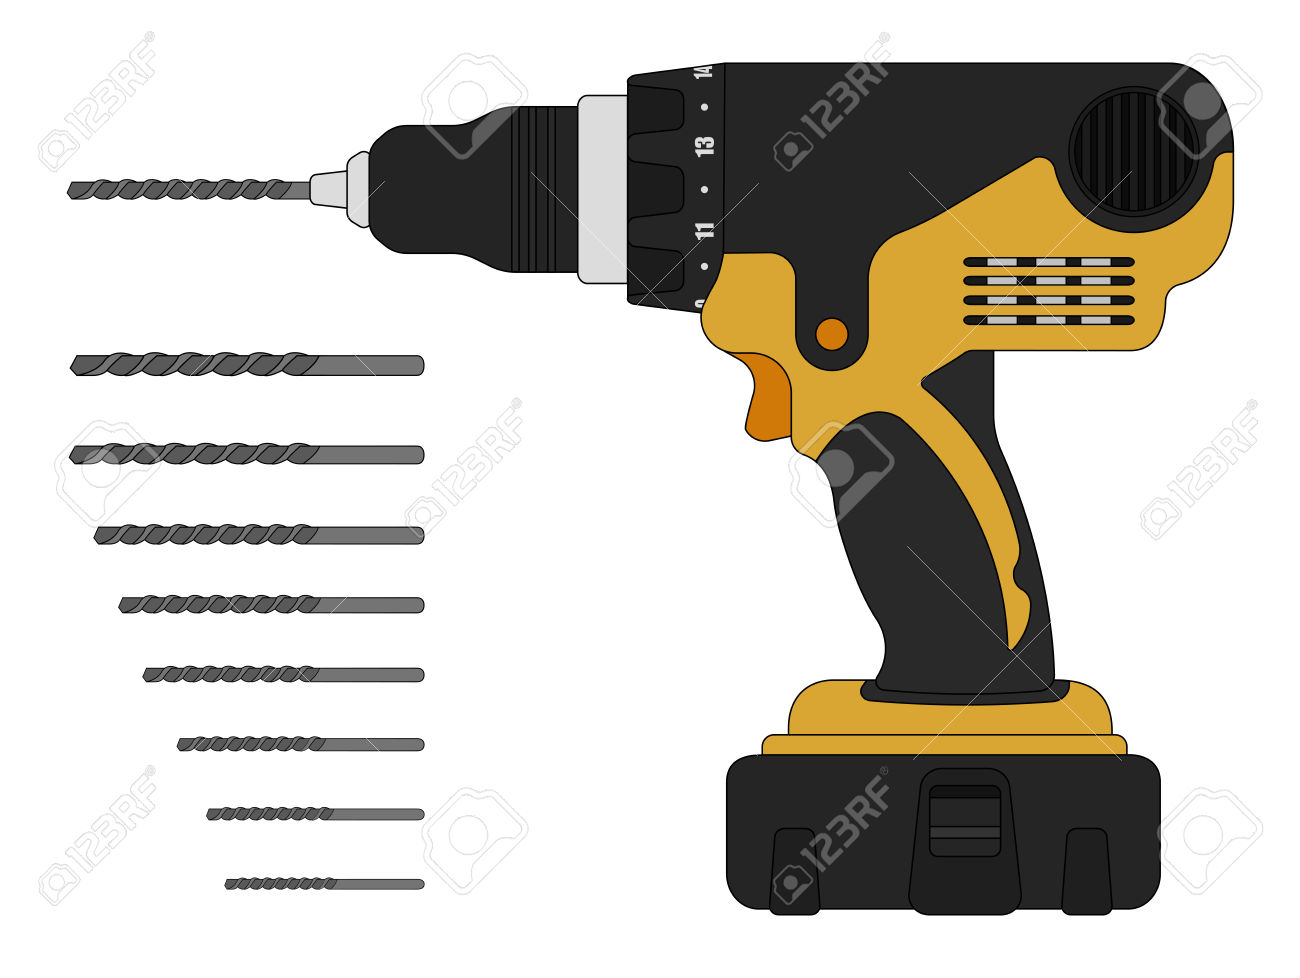 Electric Drill And Bits. Cordless Battery Construction Hand Drill.